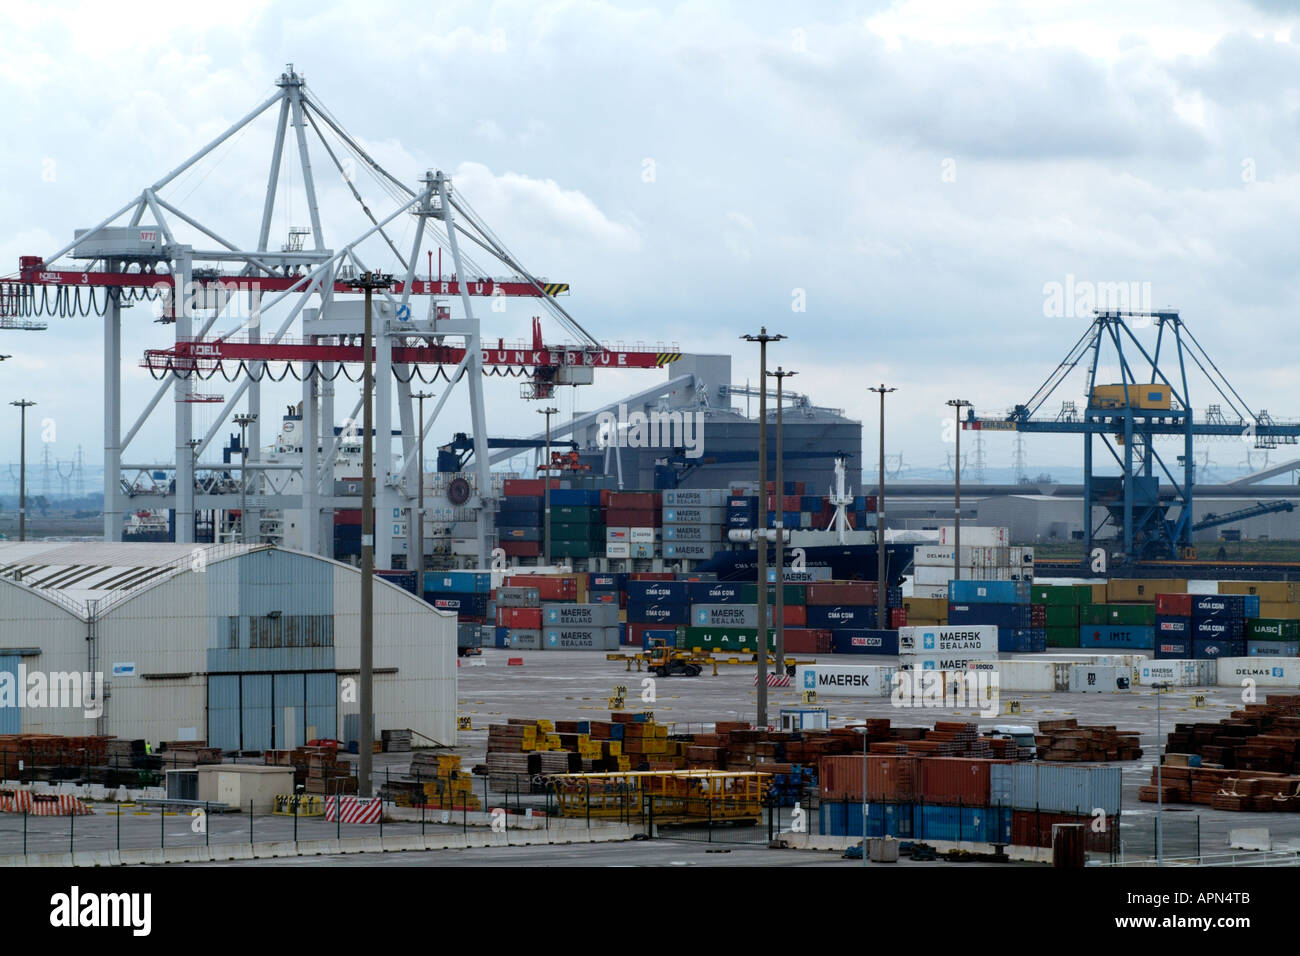 Container port dunkerque northern france europe eu cranes and stock photo royalty free image - Dunkirk port france address ...